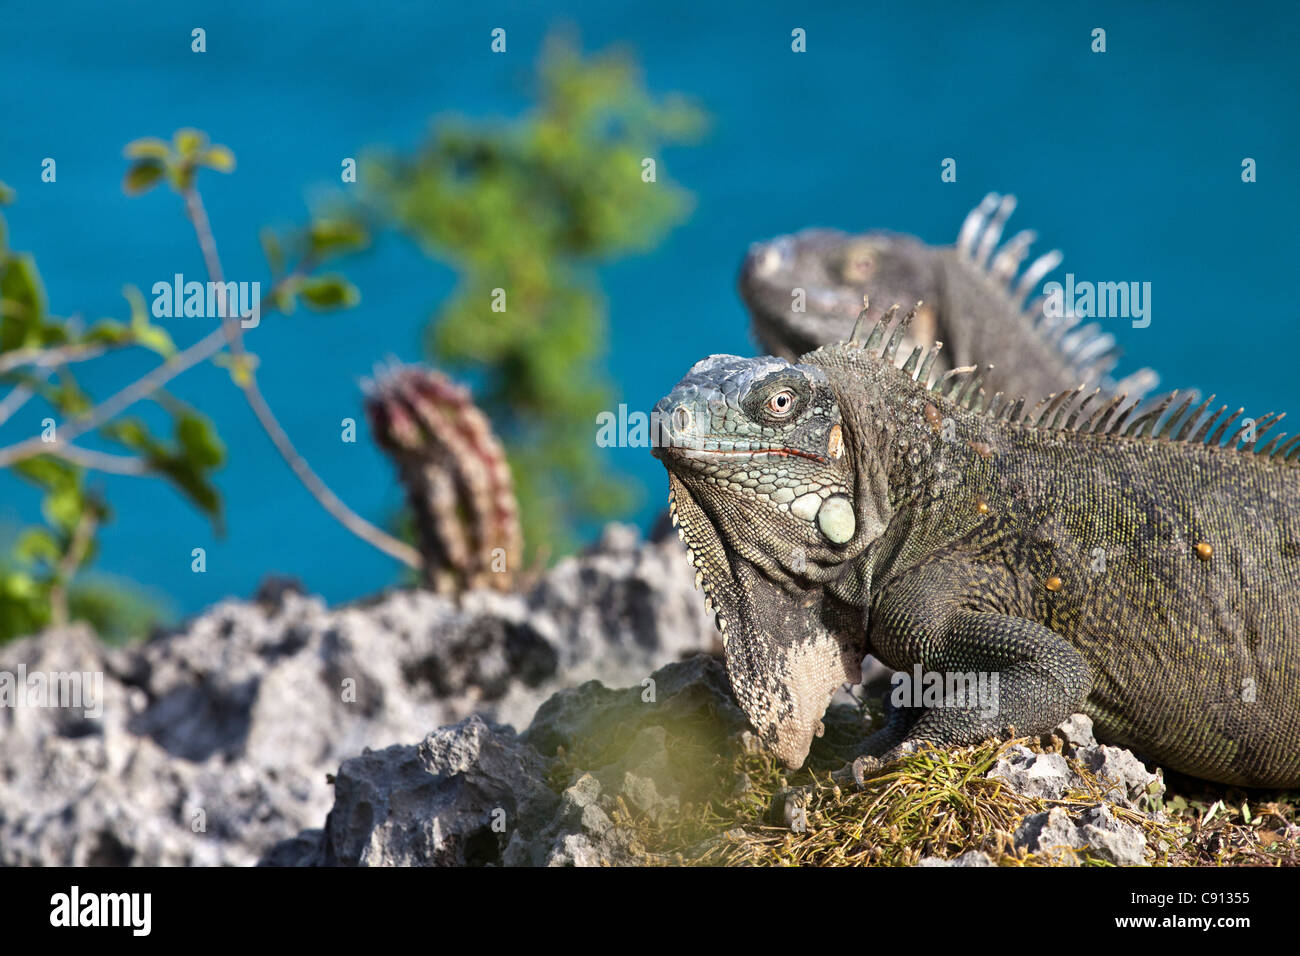 The Netherlands, Bonaire Island, Dutch Caribbean, Kralendijk, Green Iguana ( Iguana iguana ). Stock Photo